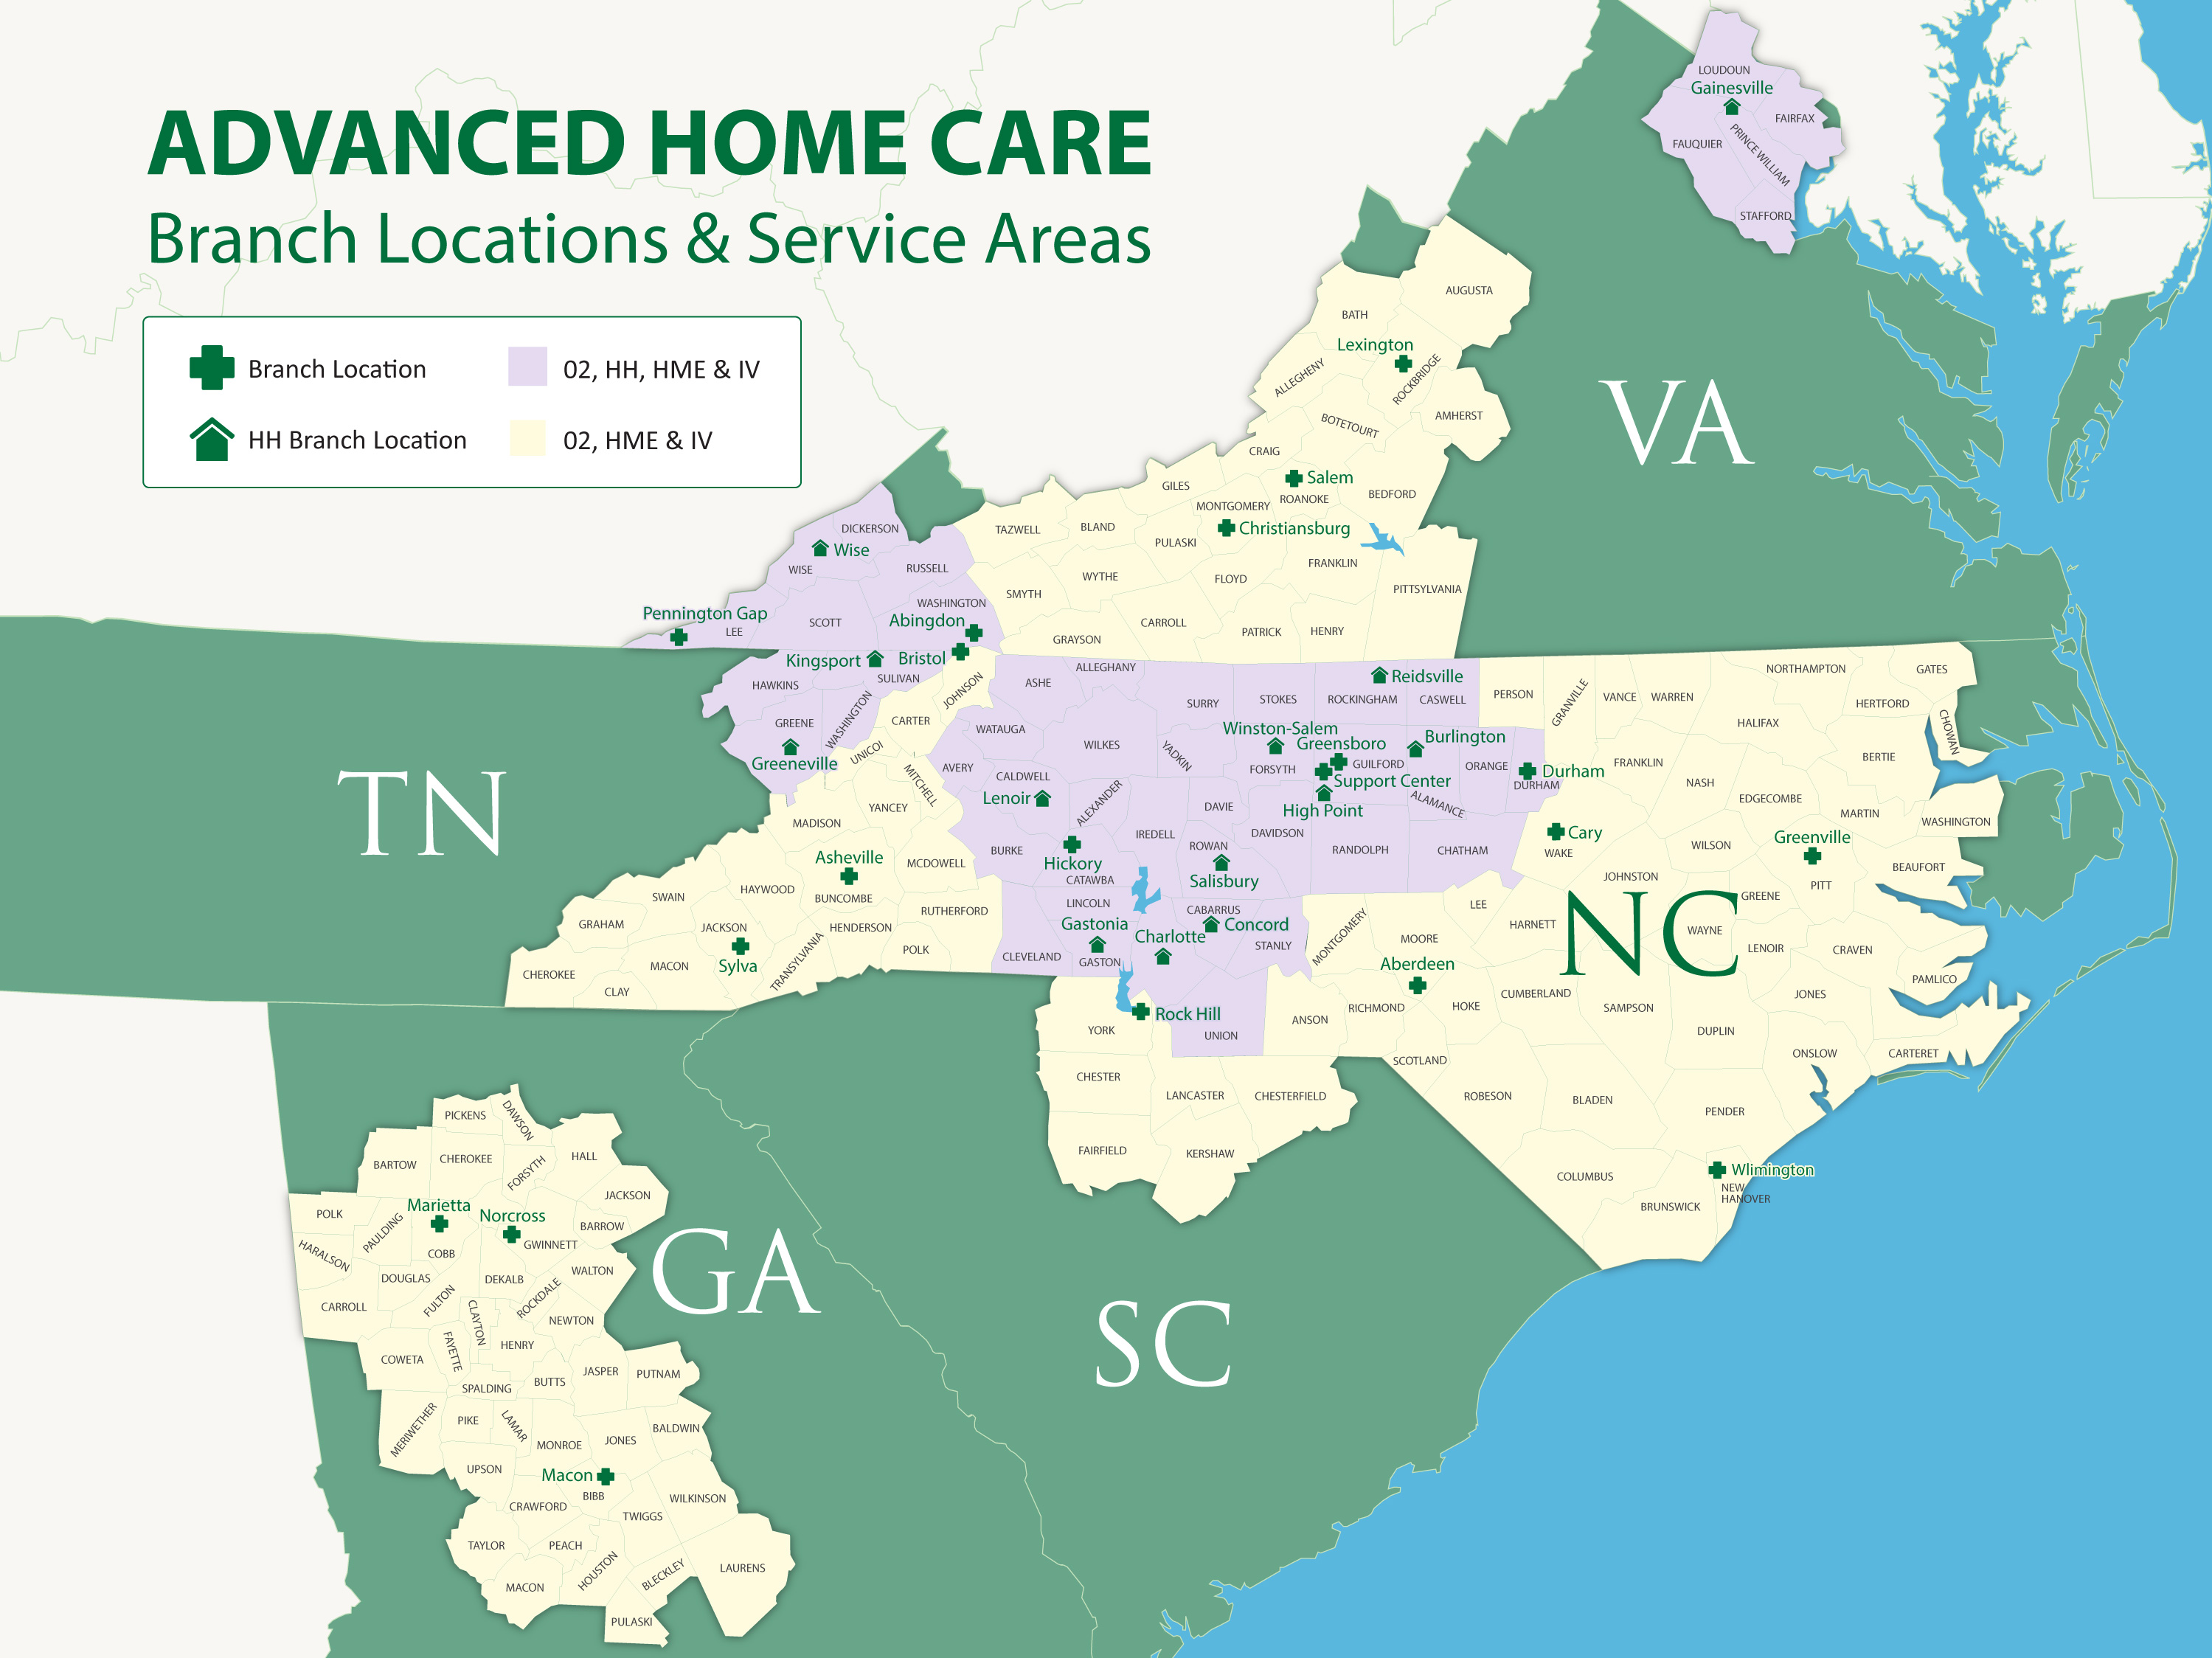 Map showing Advanced Home Care Service Areas